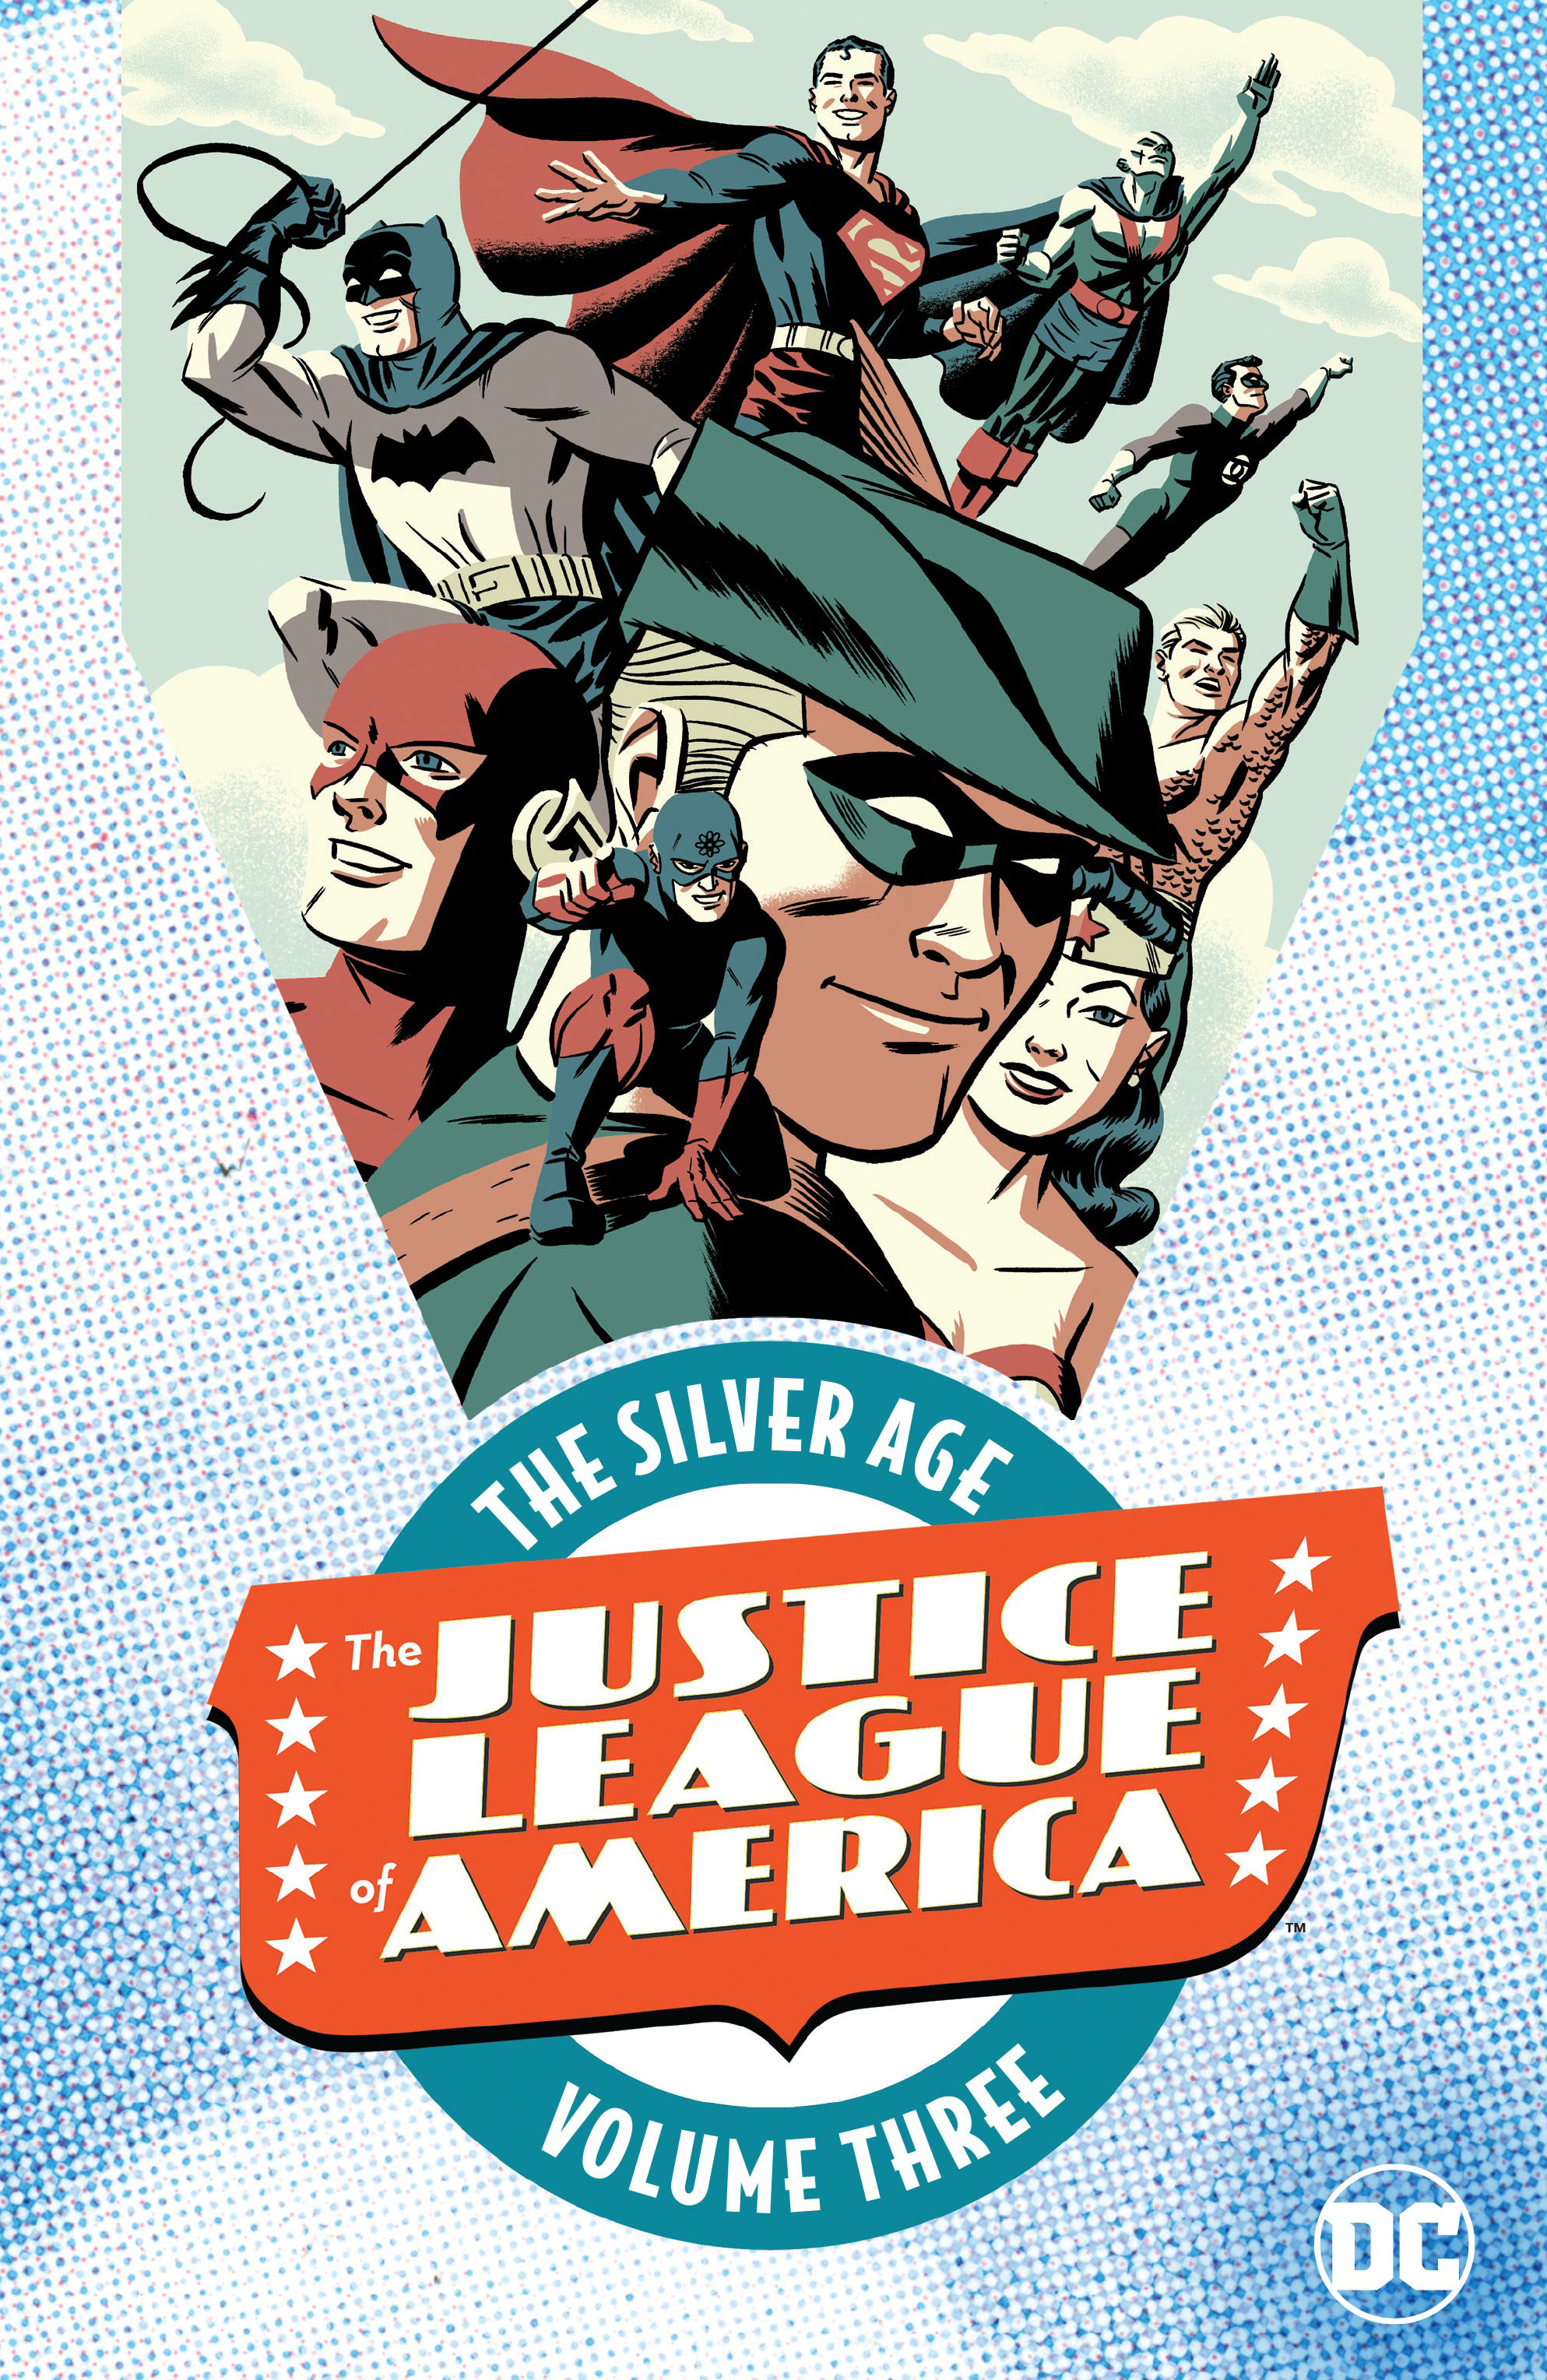 Justice League of America: The Silver Age Vol. 3 lady s vol 3 game of fools